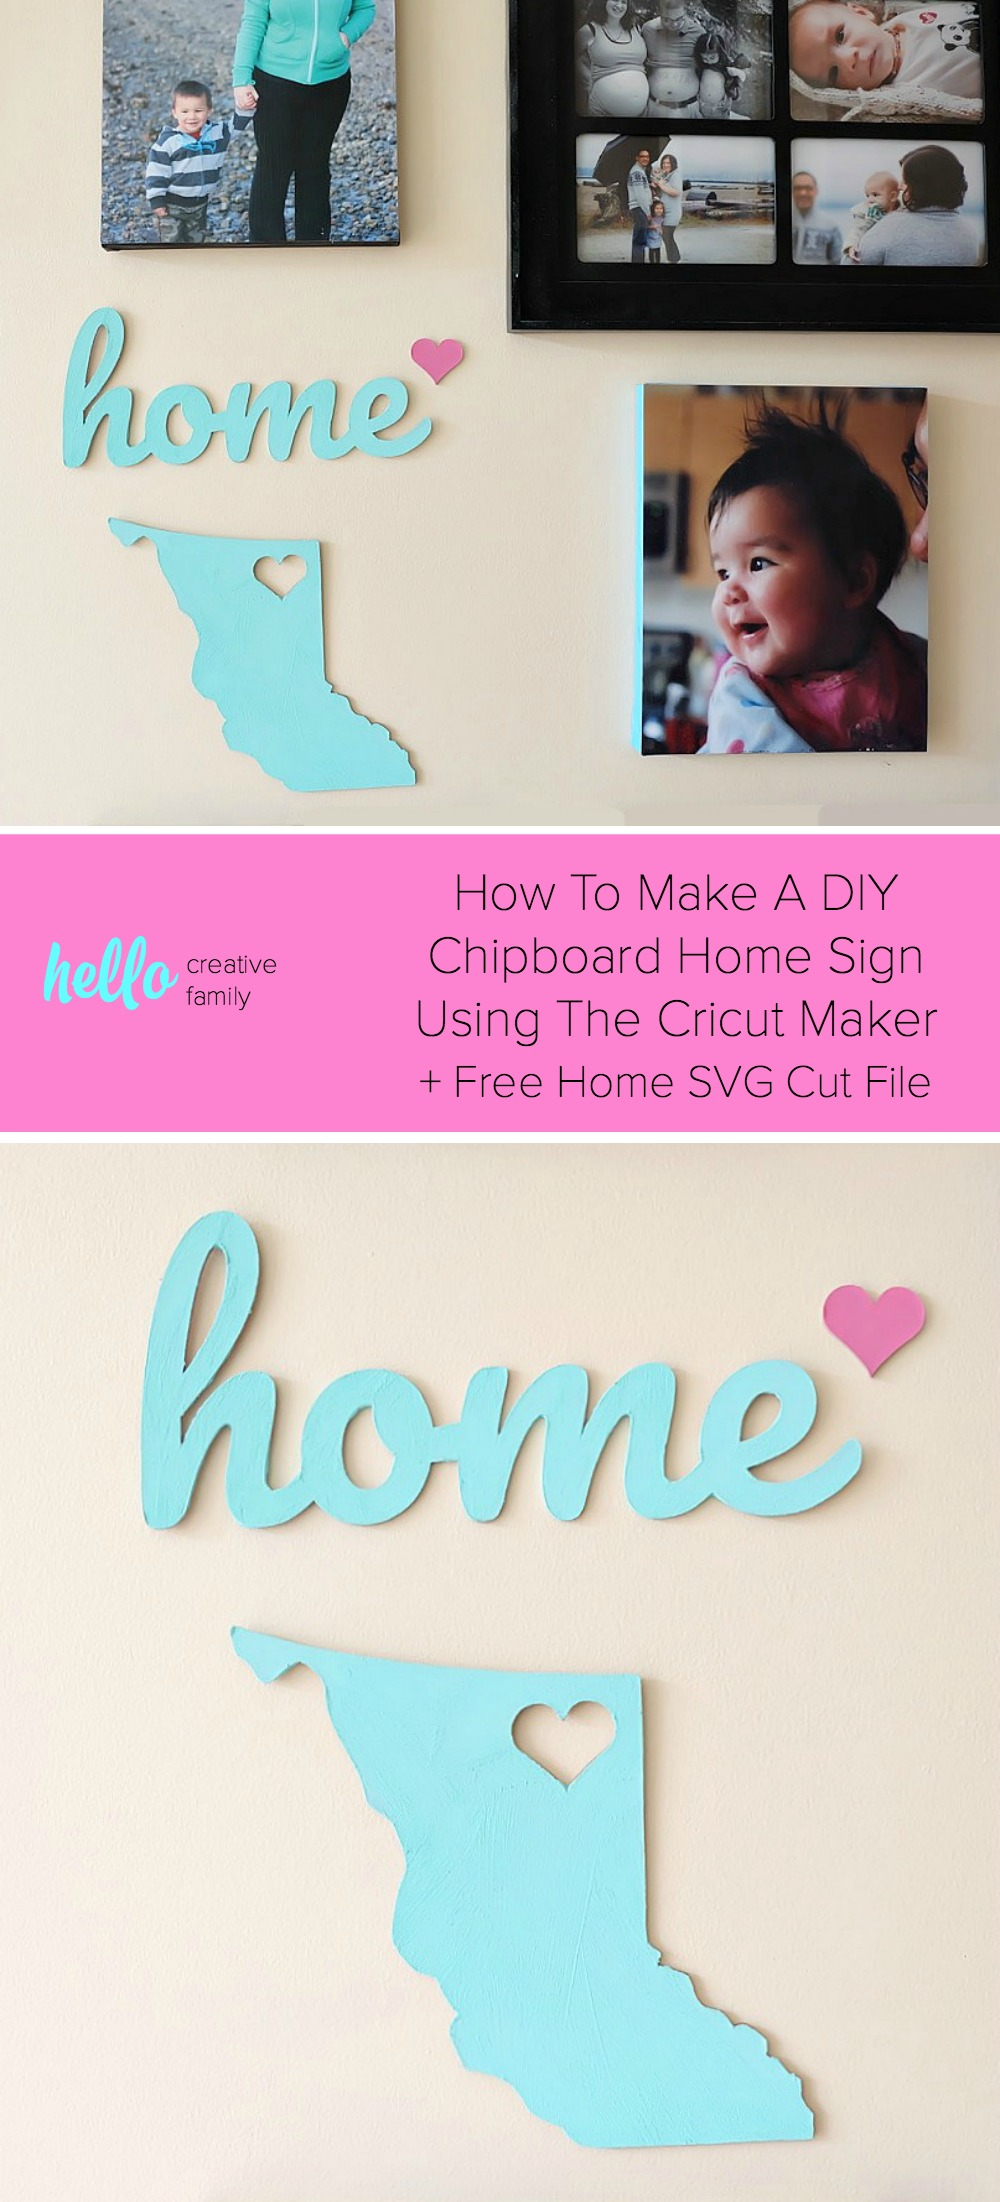 Have you used your Cricut Maker to cut chipboard yet? What are you waiting for? It's amazing and easy! Learn tips for cutting chipboard with the Cricut Maker, how to make a gorgeous DIY Chipboard Home sign for a handmade accent piece on your photo wall and grab our free Home SVG which you can cut with a Cricut or Silhouette. This would also make the cutest handmade housewarming gift! #SVG #FreeSVG #CricutMaker #DIY